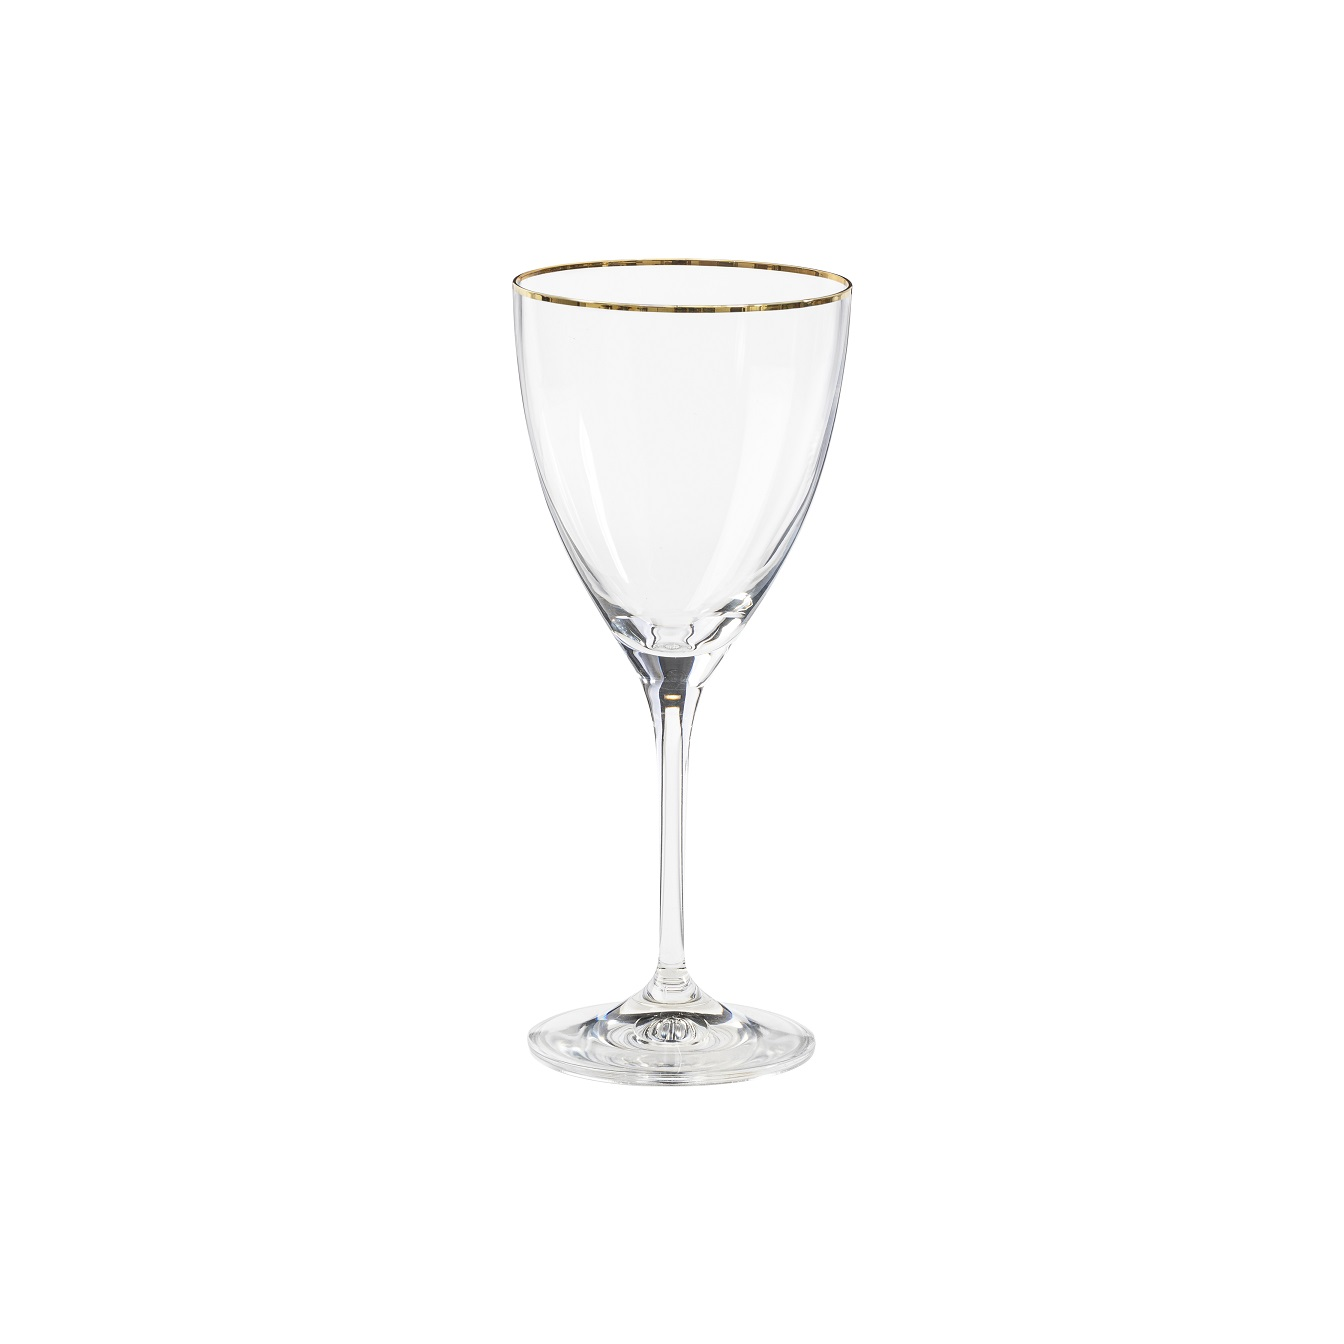 Sensa Wine Glass 250ml Golden Rim Sparkle Gift